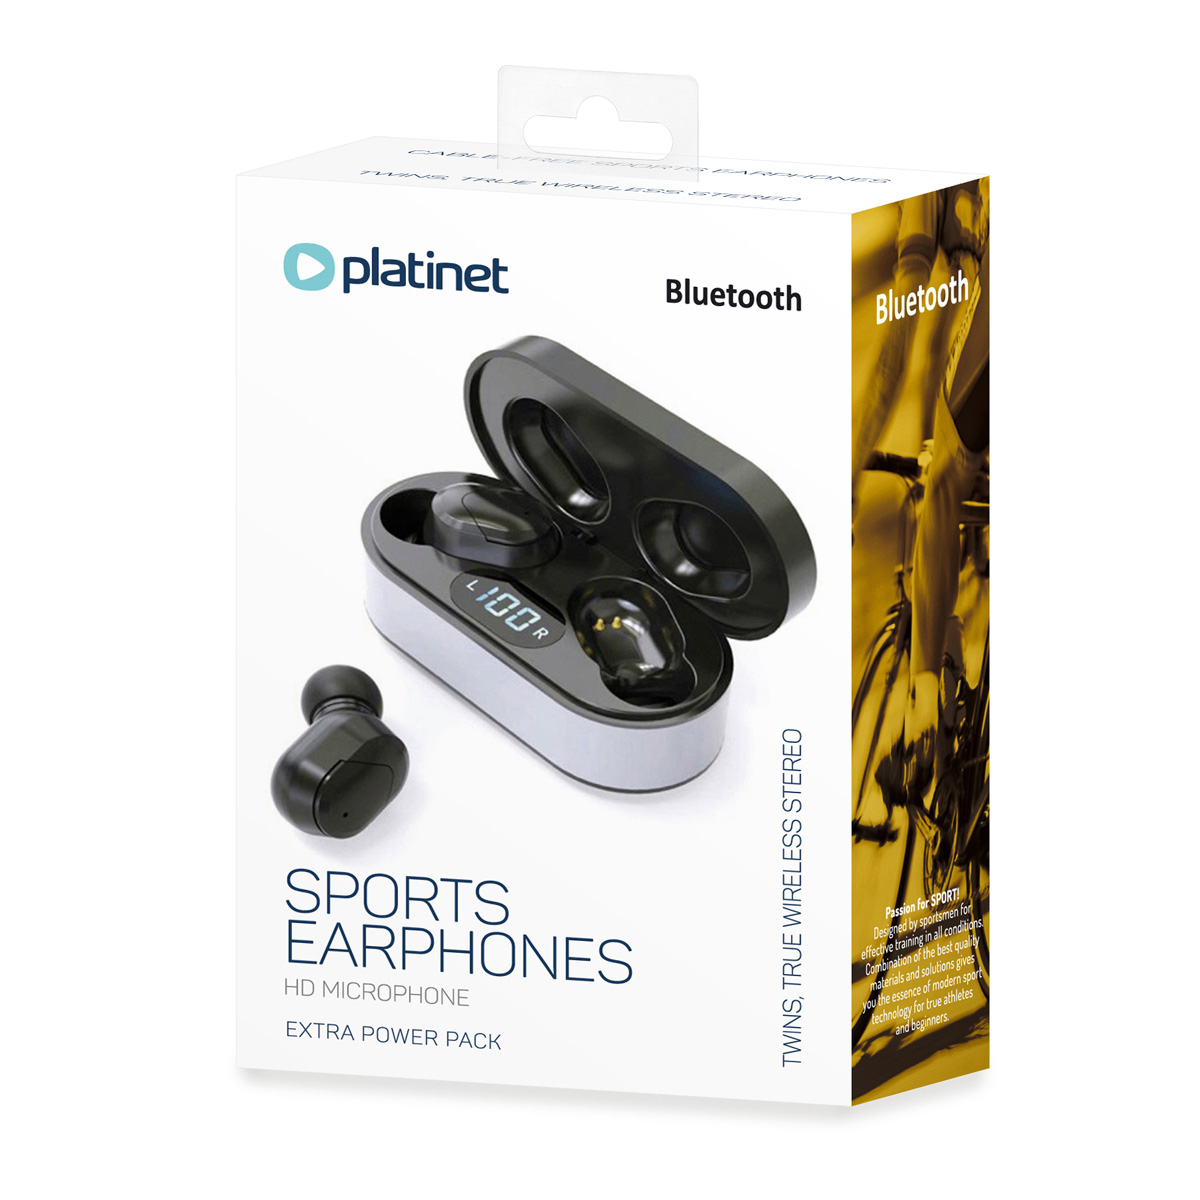 Platinet Bluetooth V5.0 in-ear earphone with microphone - wireless 40 mAh +charging station 300 mAh black LED display playing time up to 4 hours